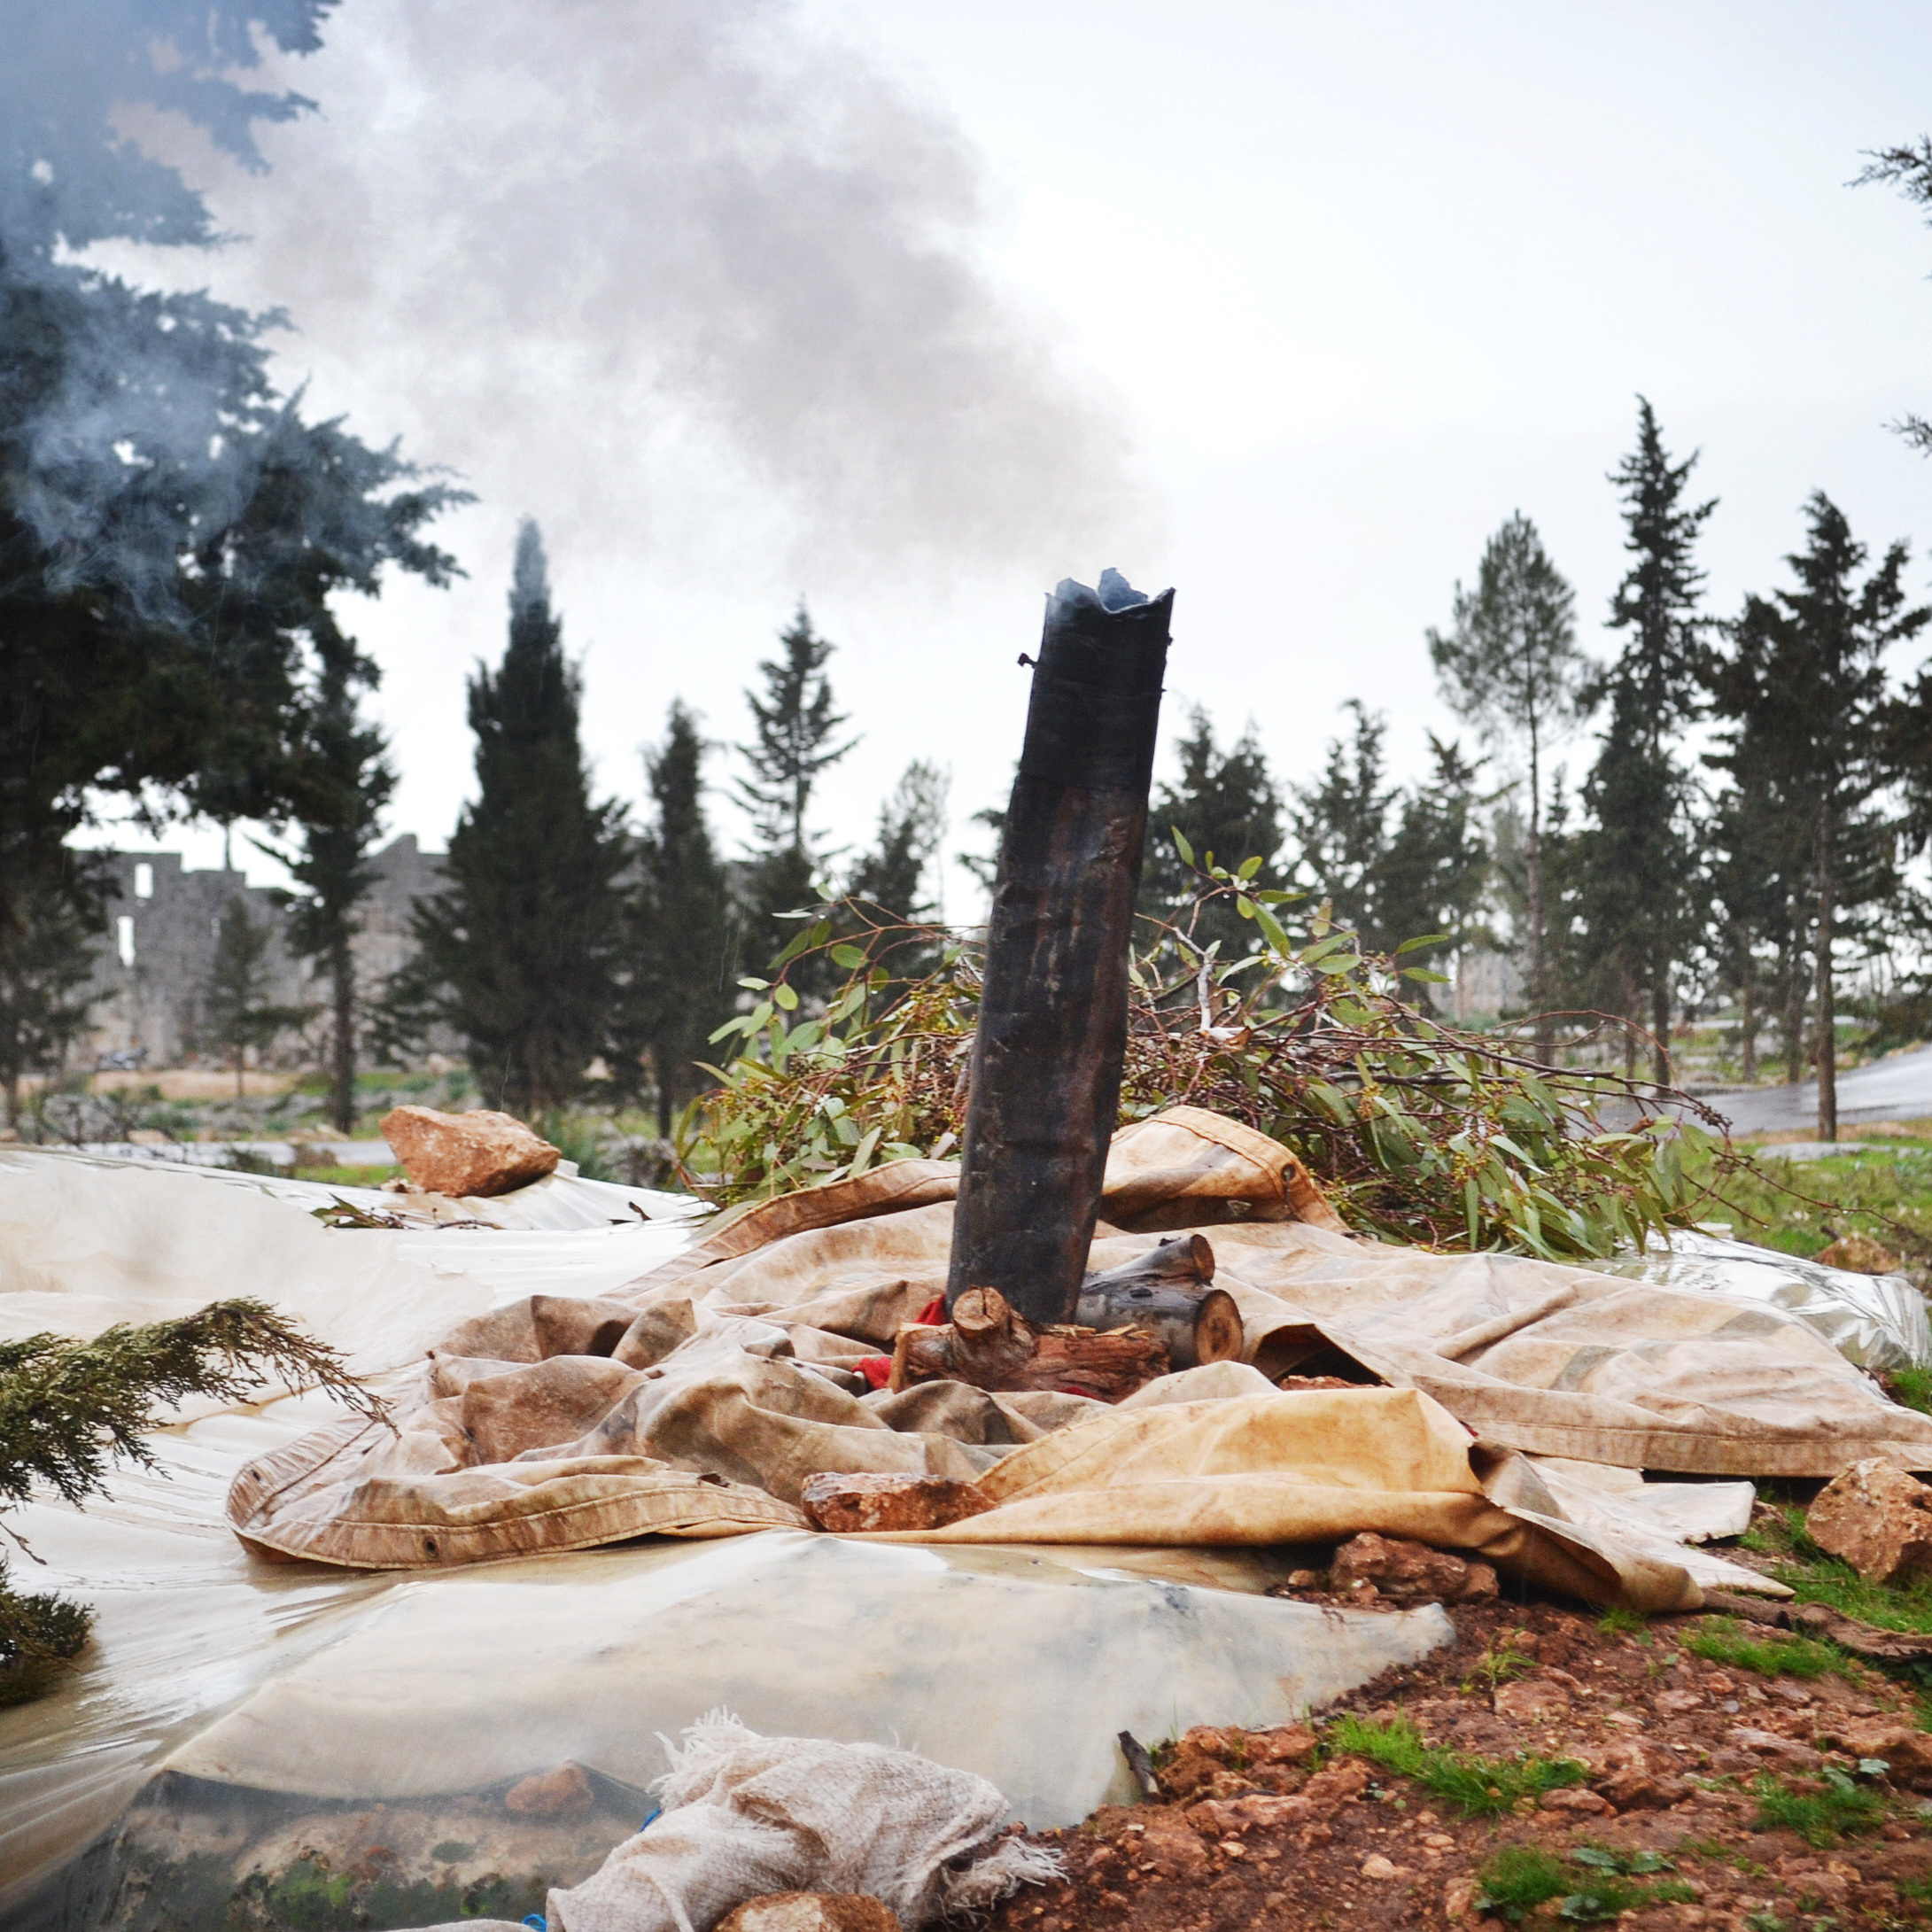 Smokestacks mark the underground dwellings of Syrians fleeing fighting in their hometowns.